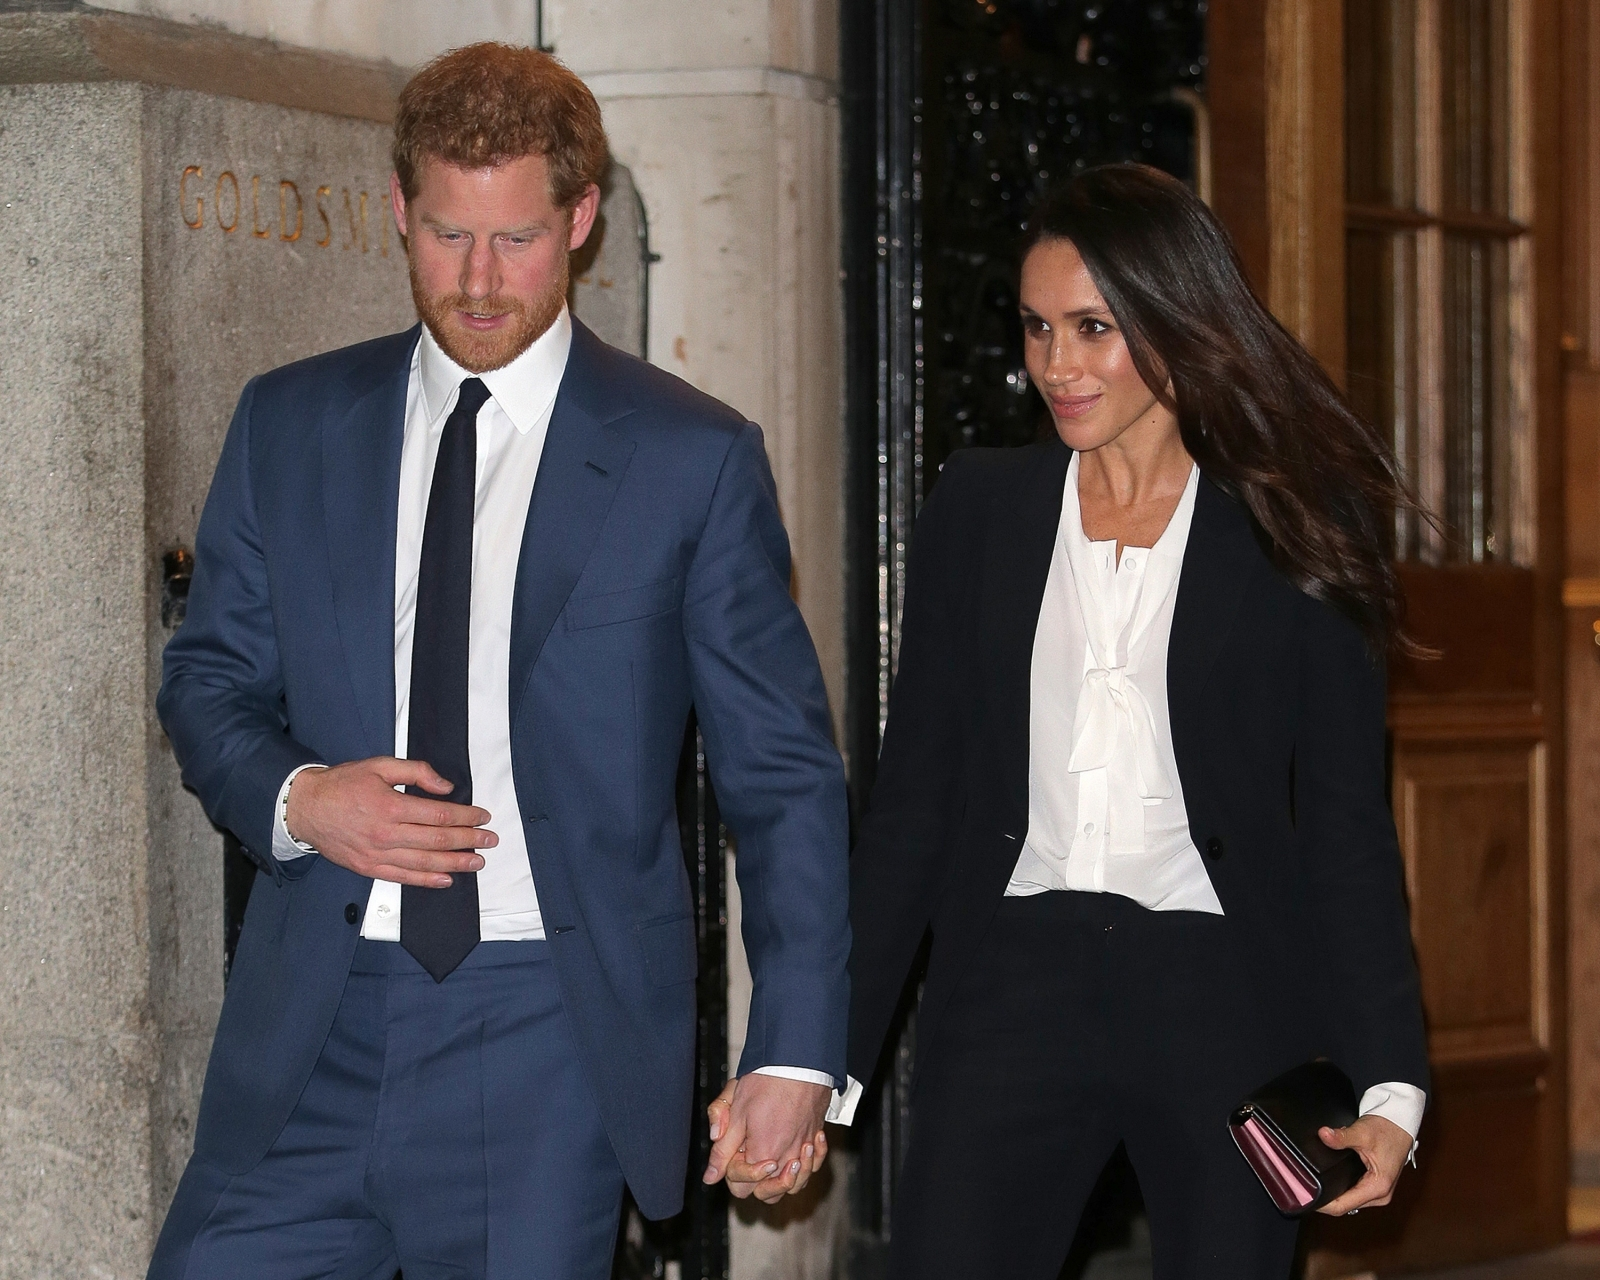 Meghan Markle Planning to Give Speech at Her Wedding With Prince Harry